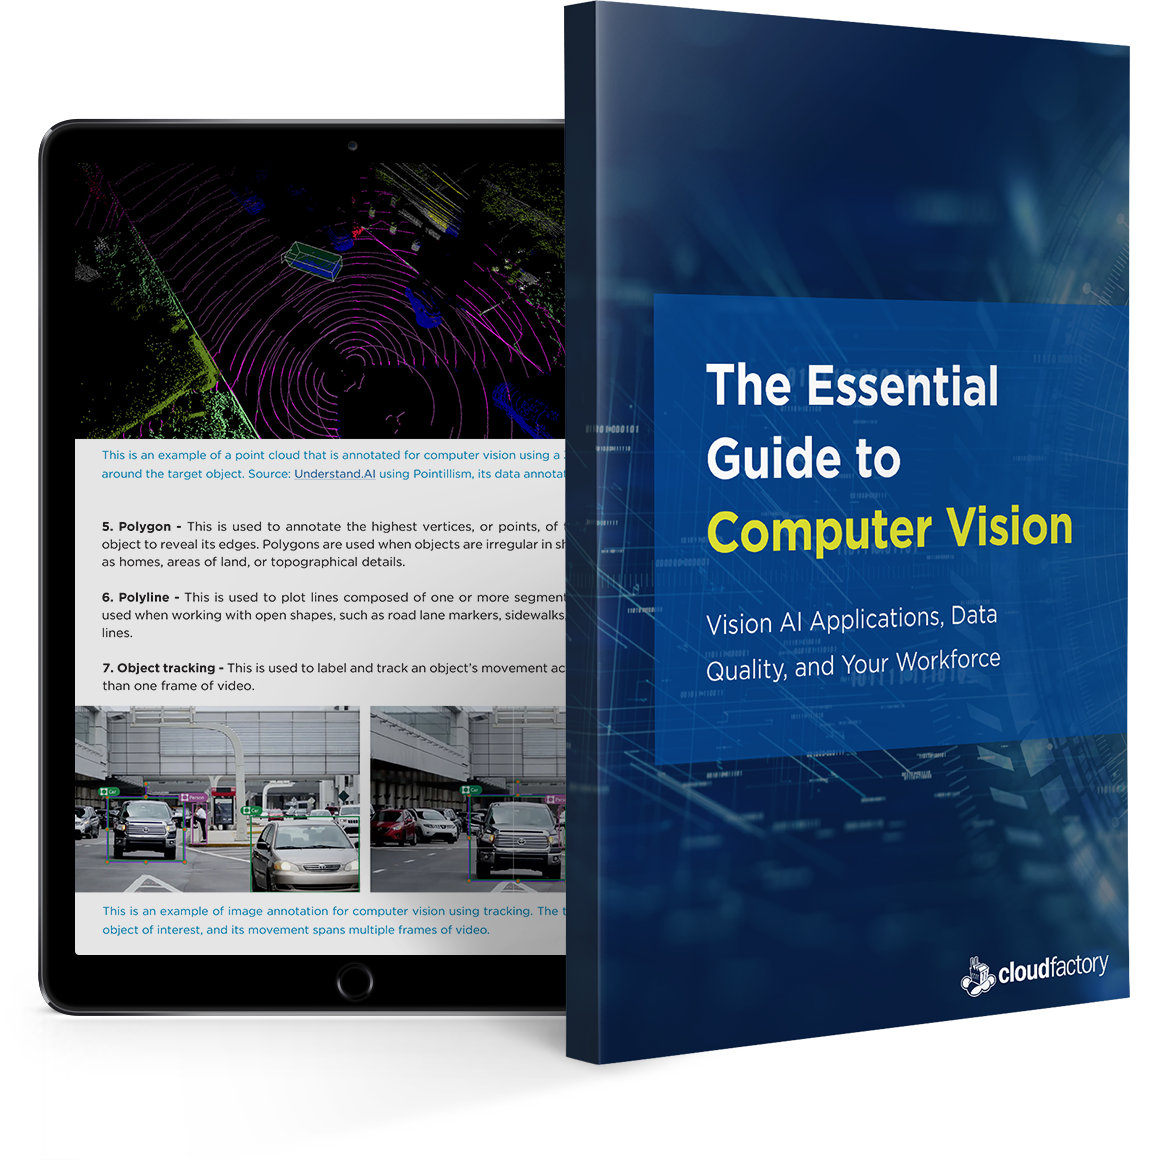 The Essential Guide to Computer Vision